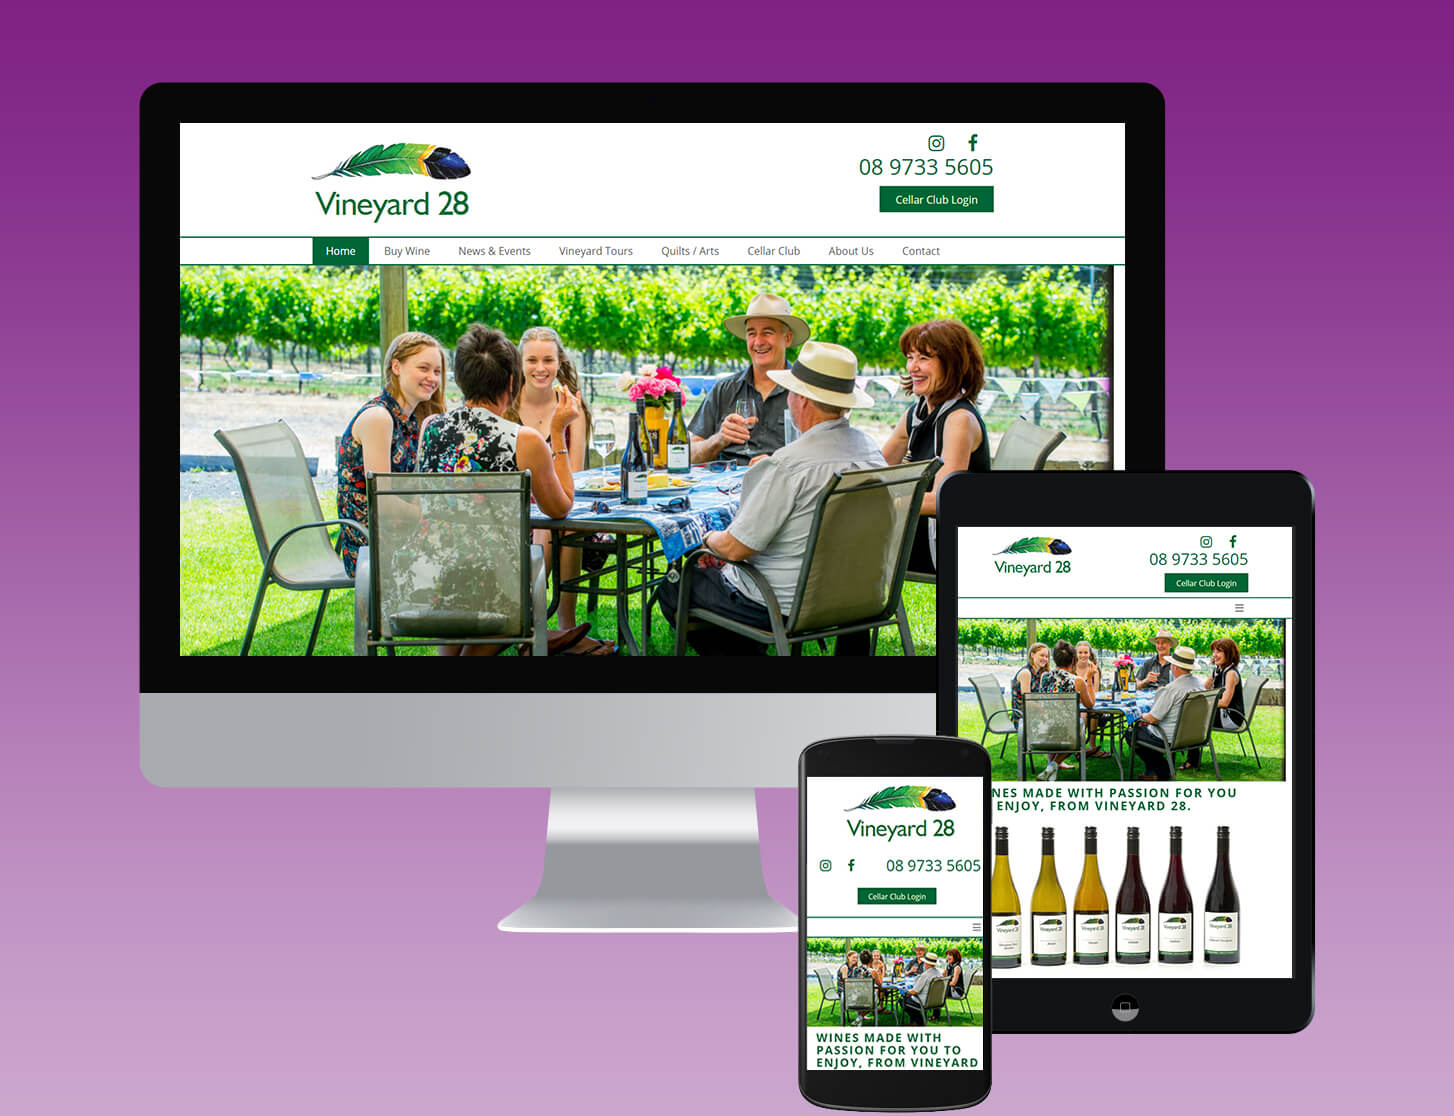 Vineyard28 website by CATCO Enterprises